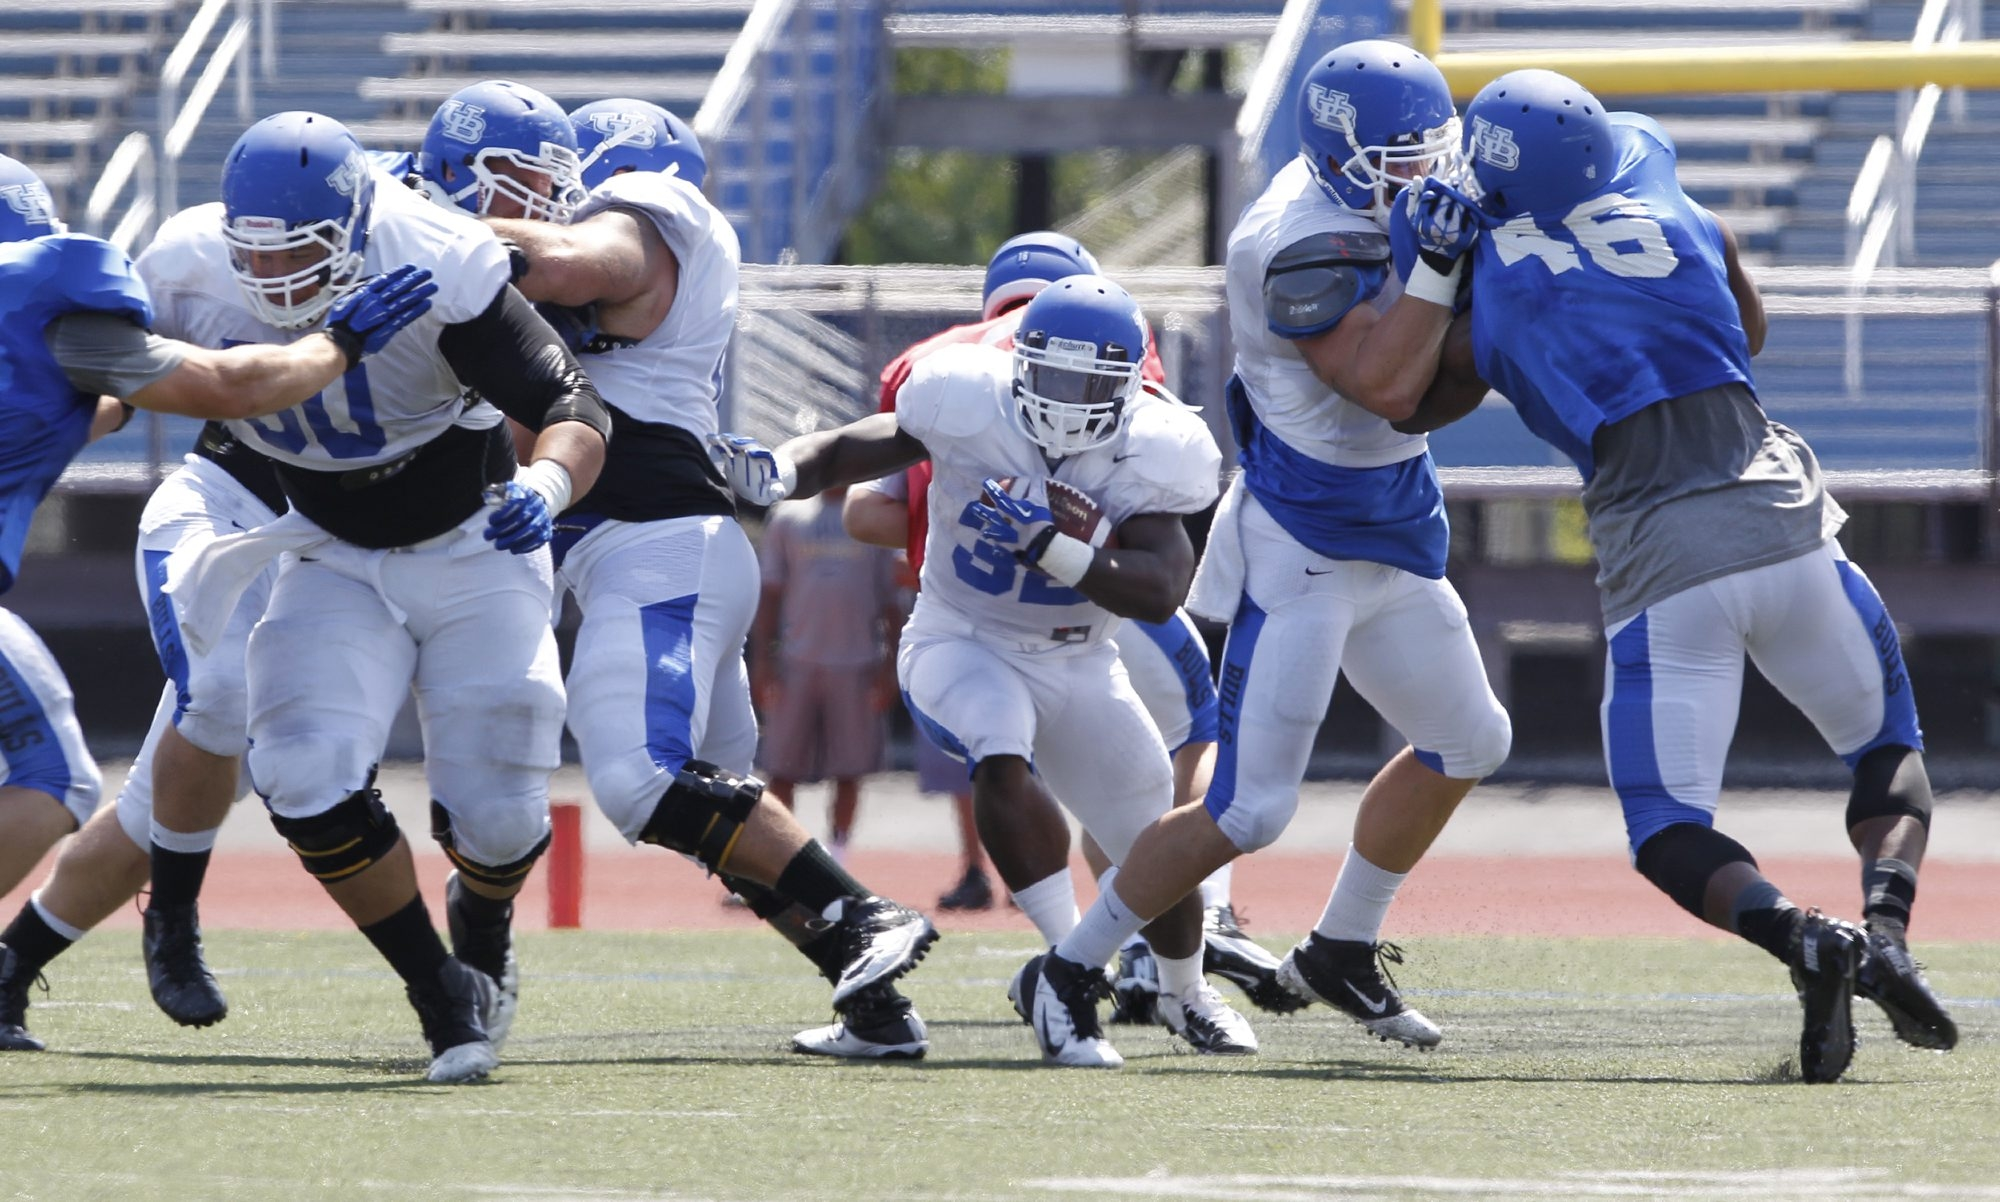 Branden Oliver looks for room during Saturday's scrimmage, in which the UB offense didn't try much to stretch the field.